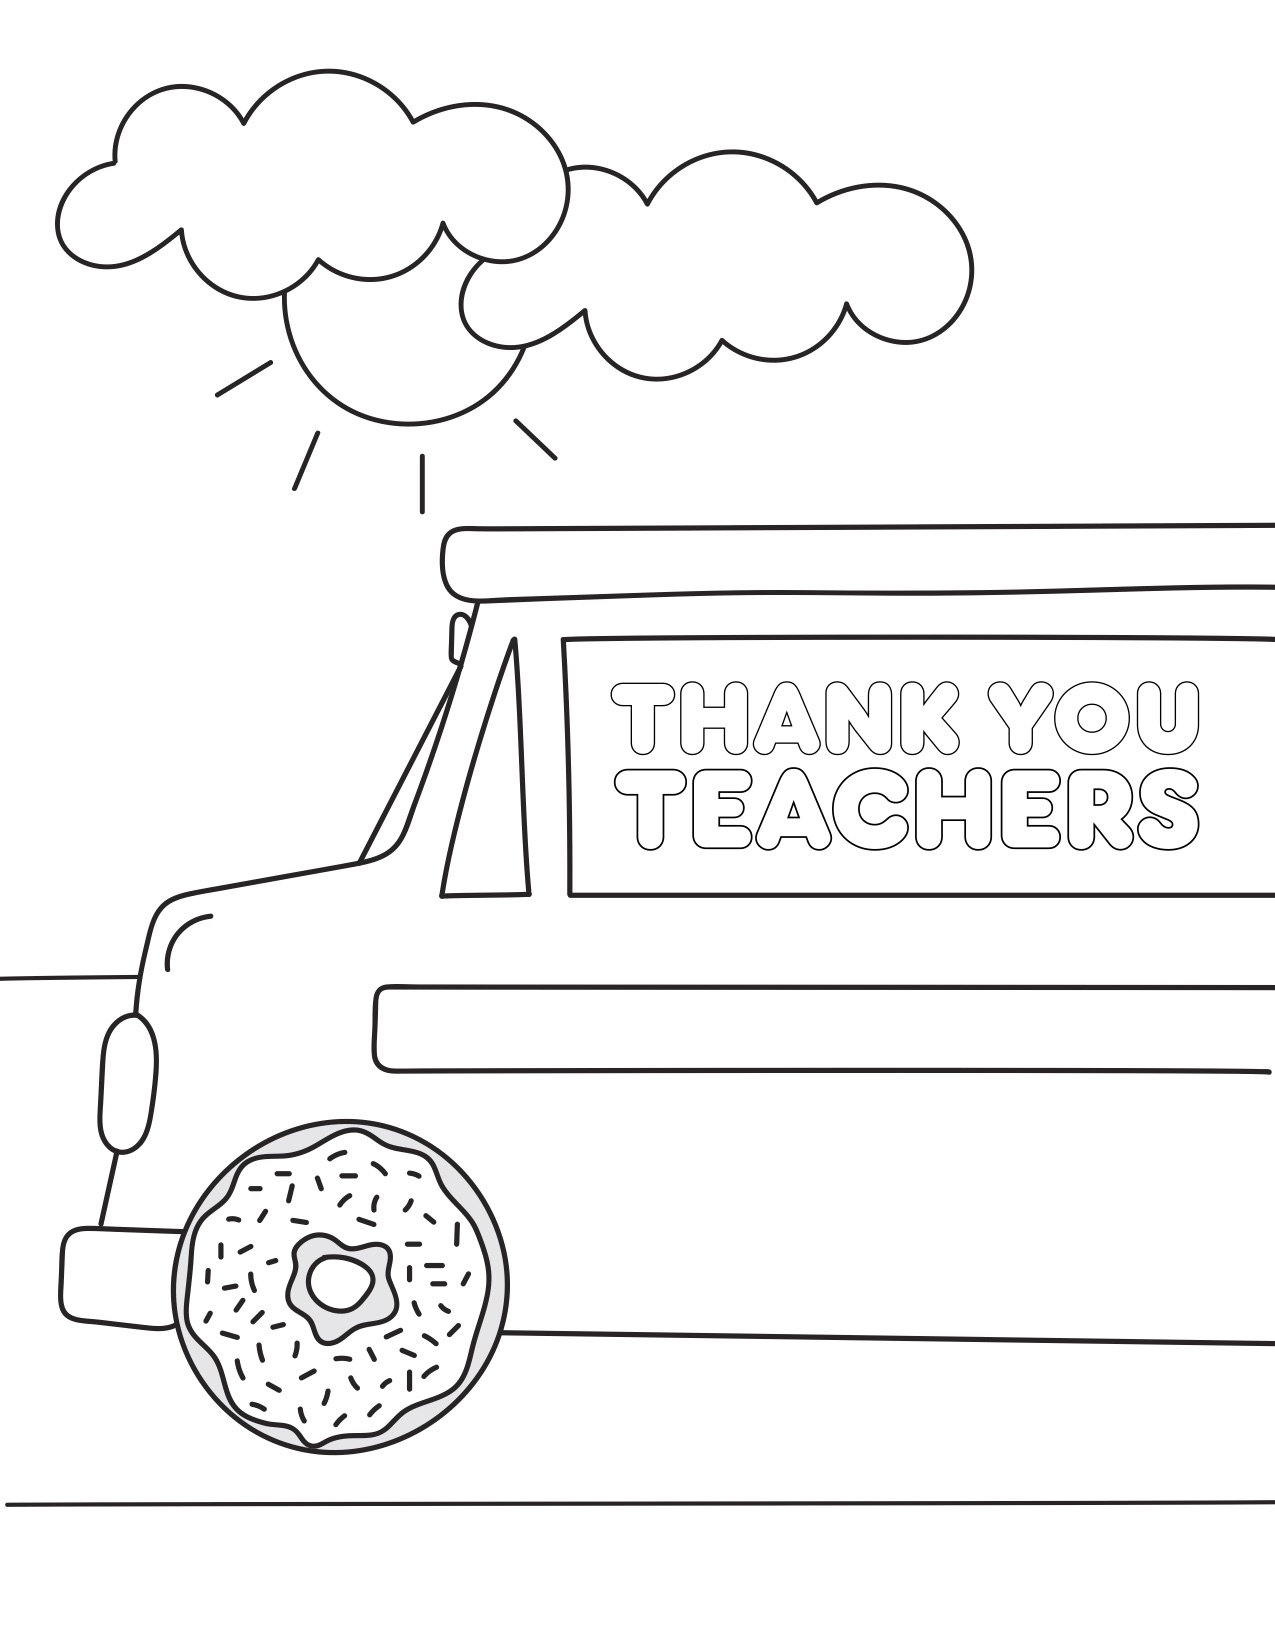 Teacher Appreciation Coloring Pages | Paper Trail Design | 1650x1275